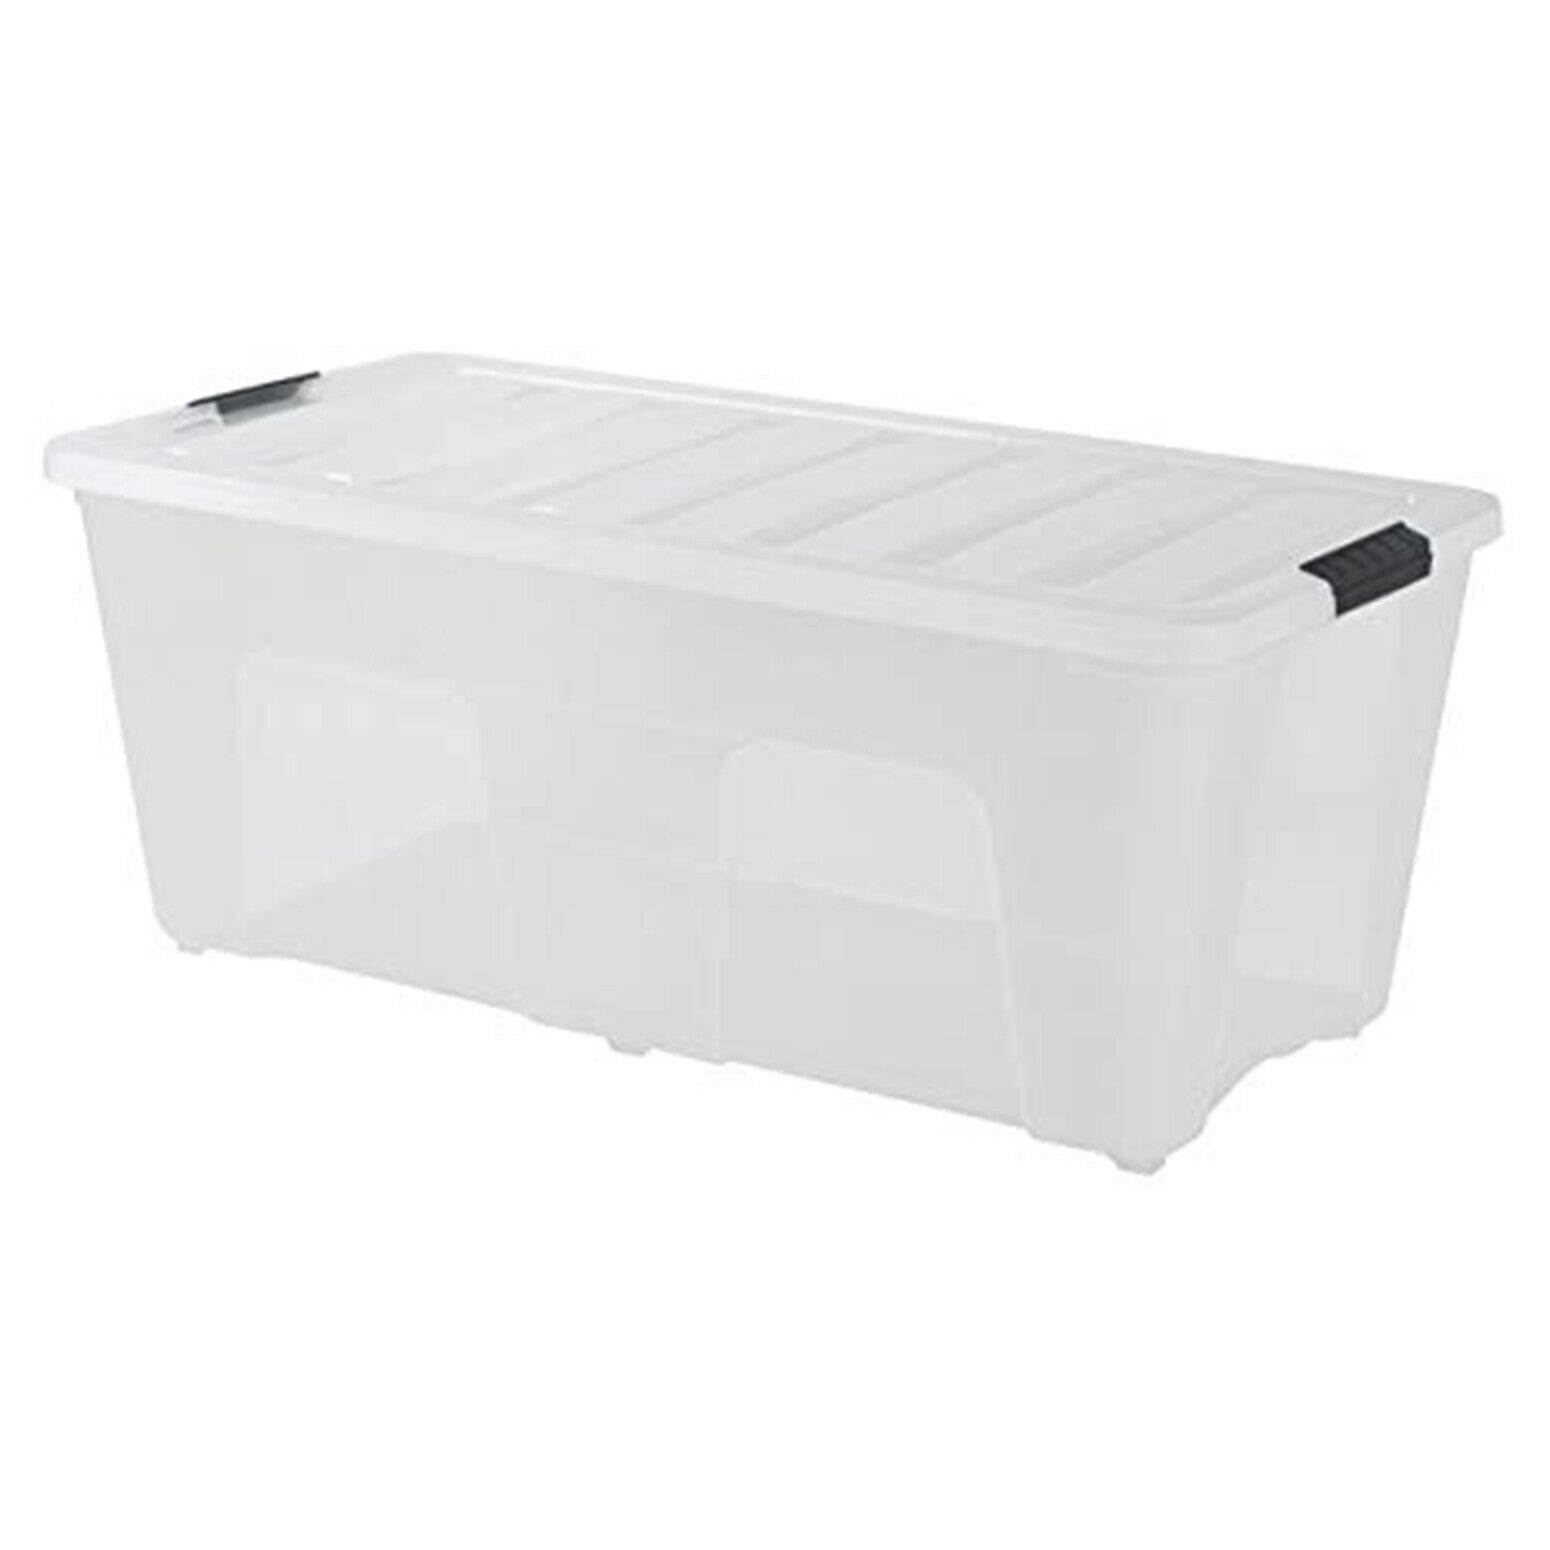 Large Plastic Storage Tote Container Clear Stackable Box Wit